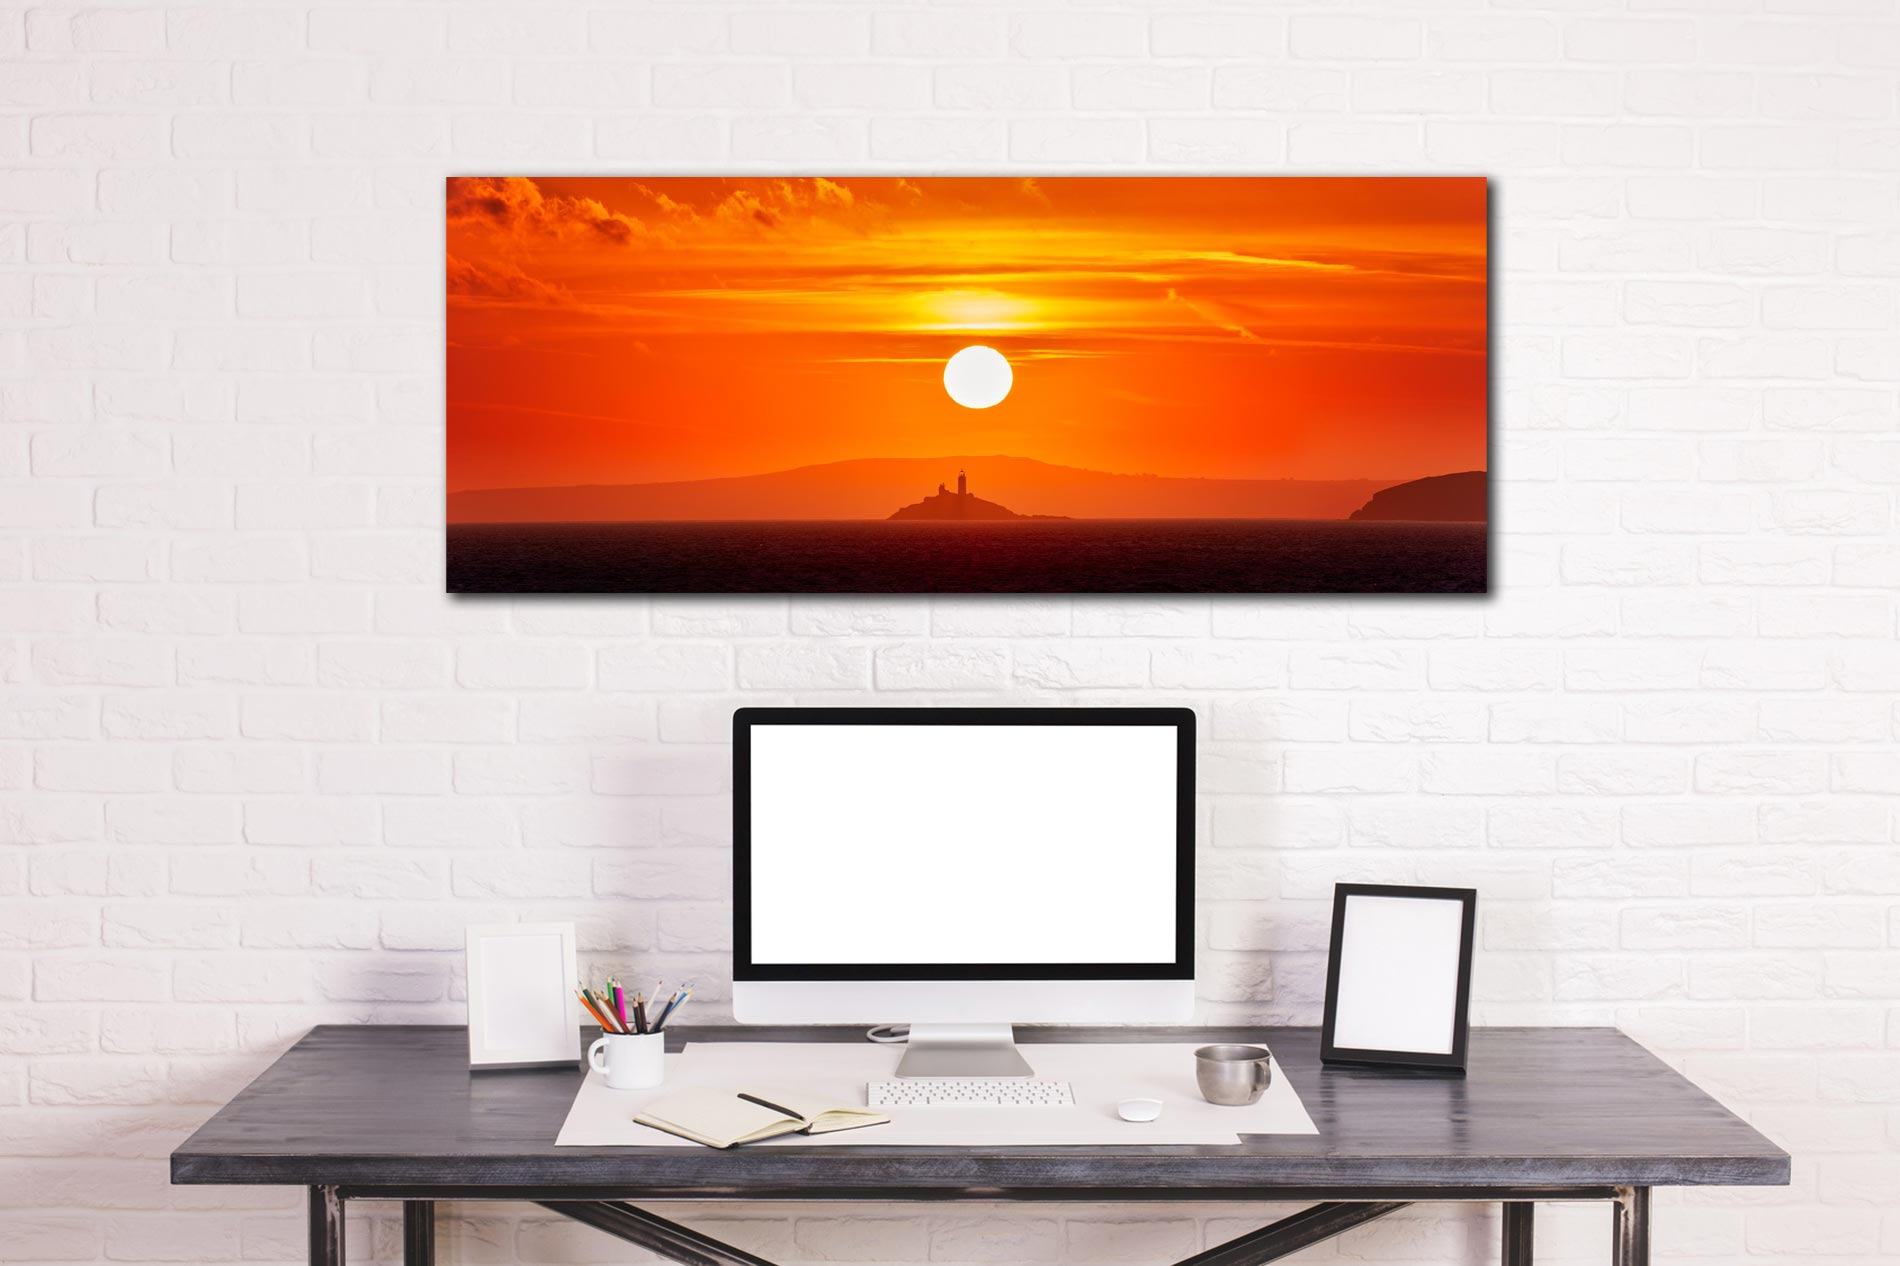 The golden sun rising over Godrevy Lighthouse in St Ives Bay - Print Aluminium Backing With Acrylic Glazing on Wall